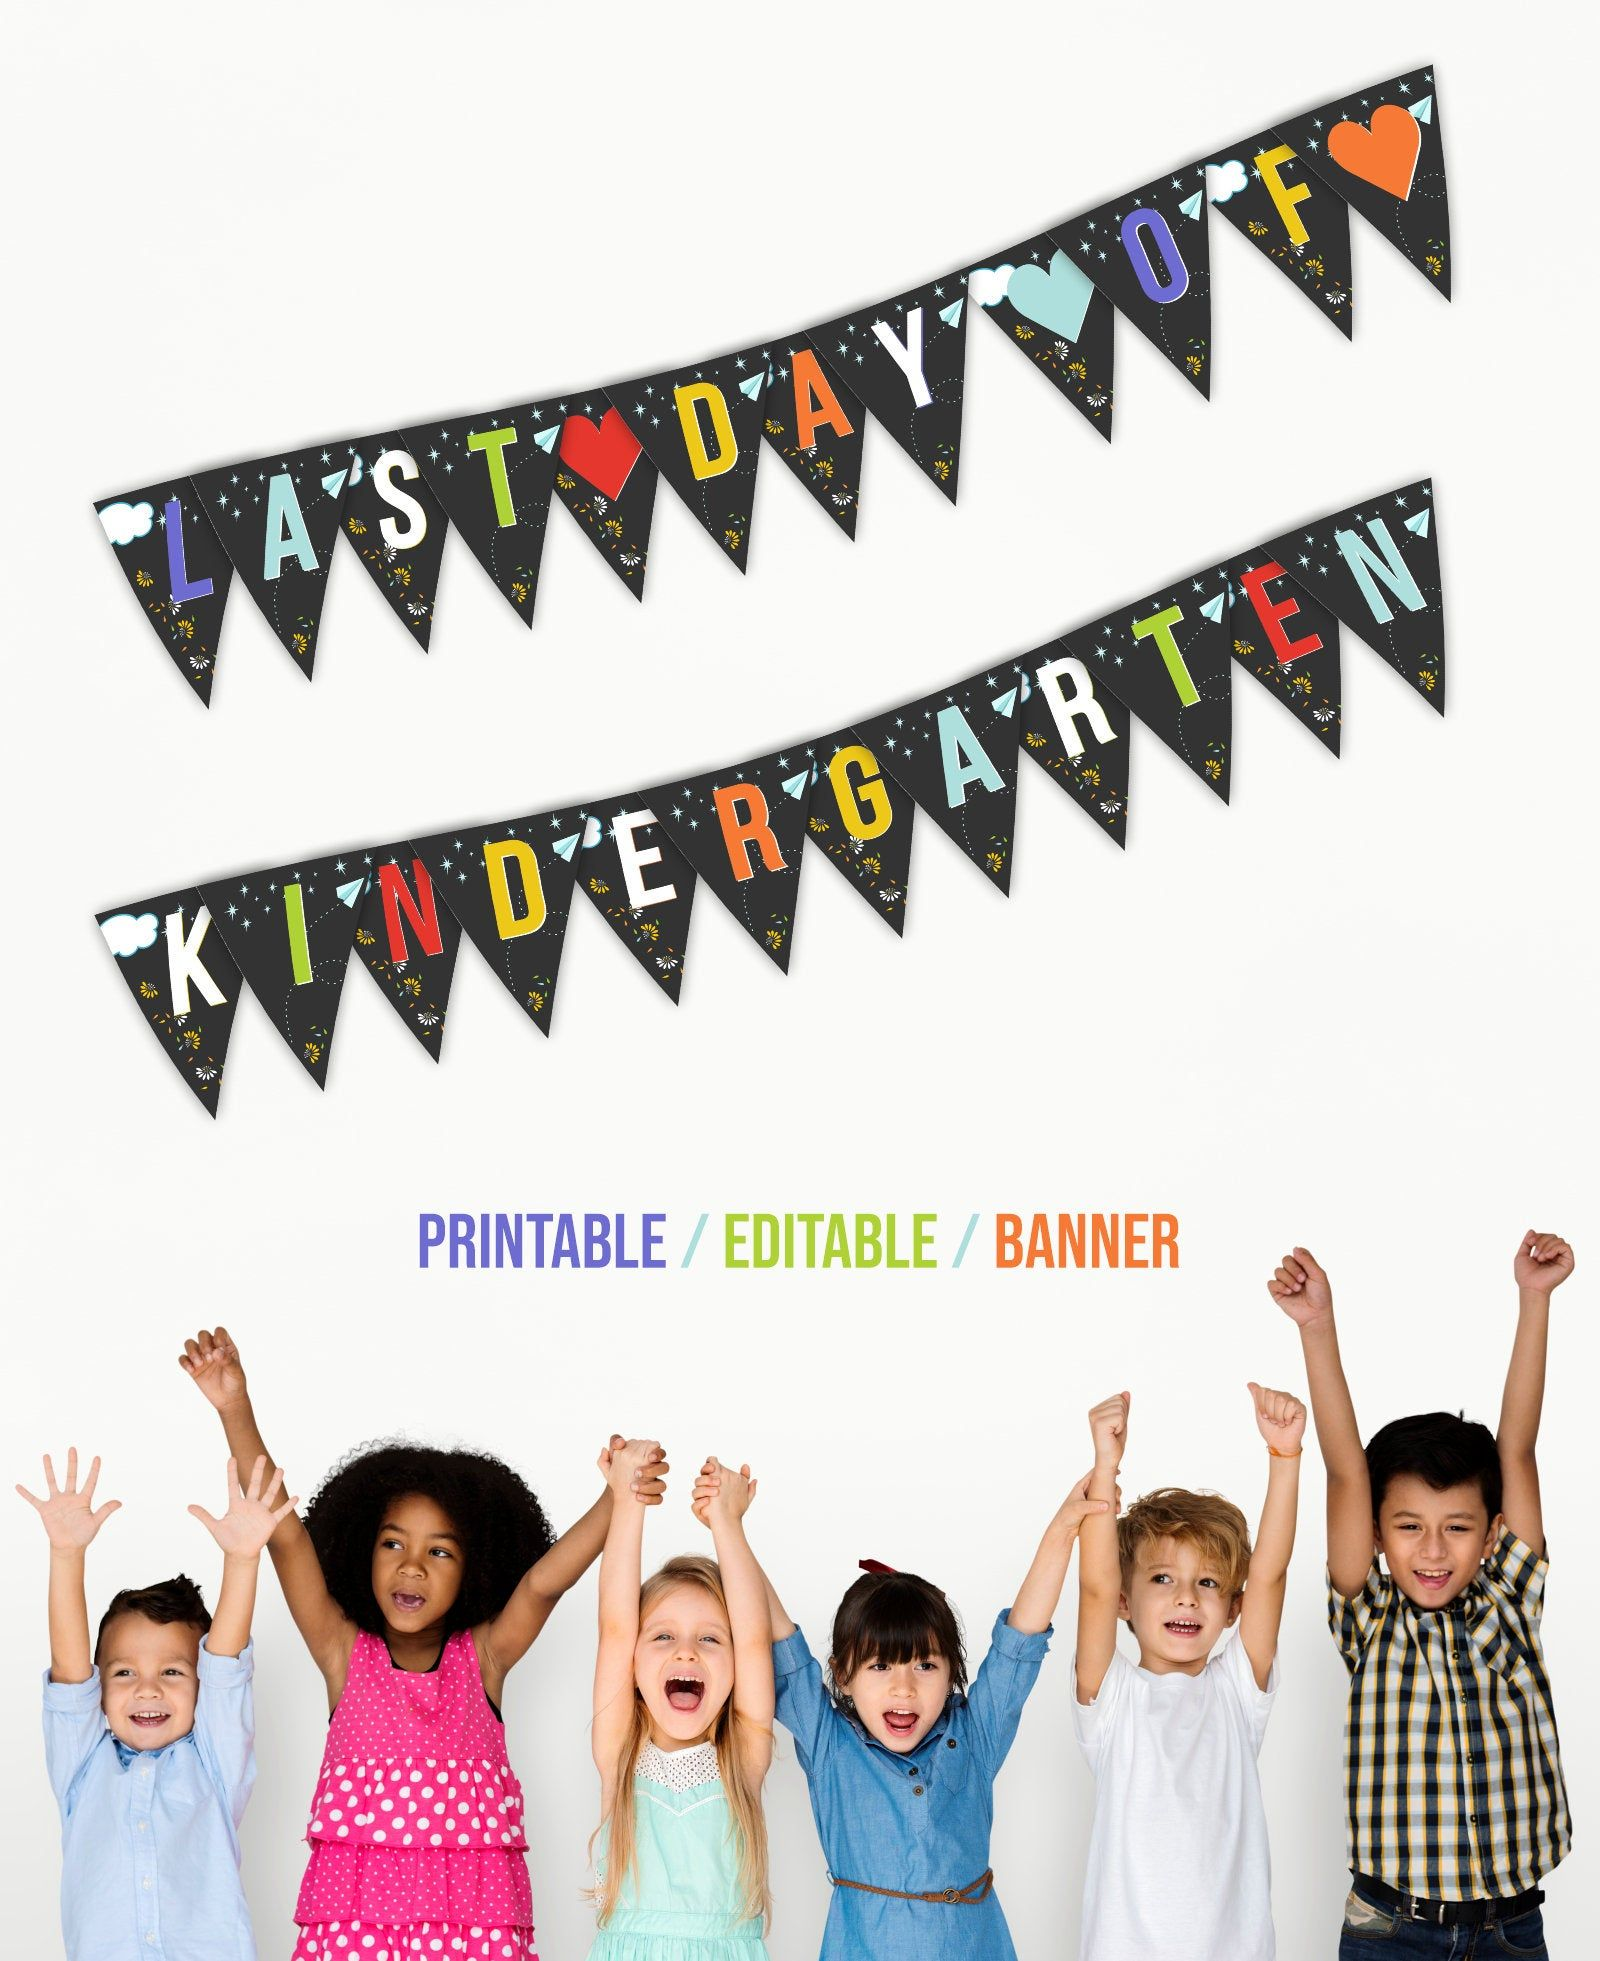 Last Day Of Kindergarten Printable Banner Mini-mall